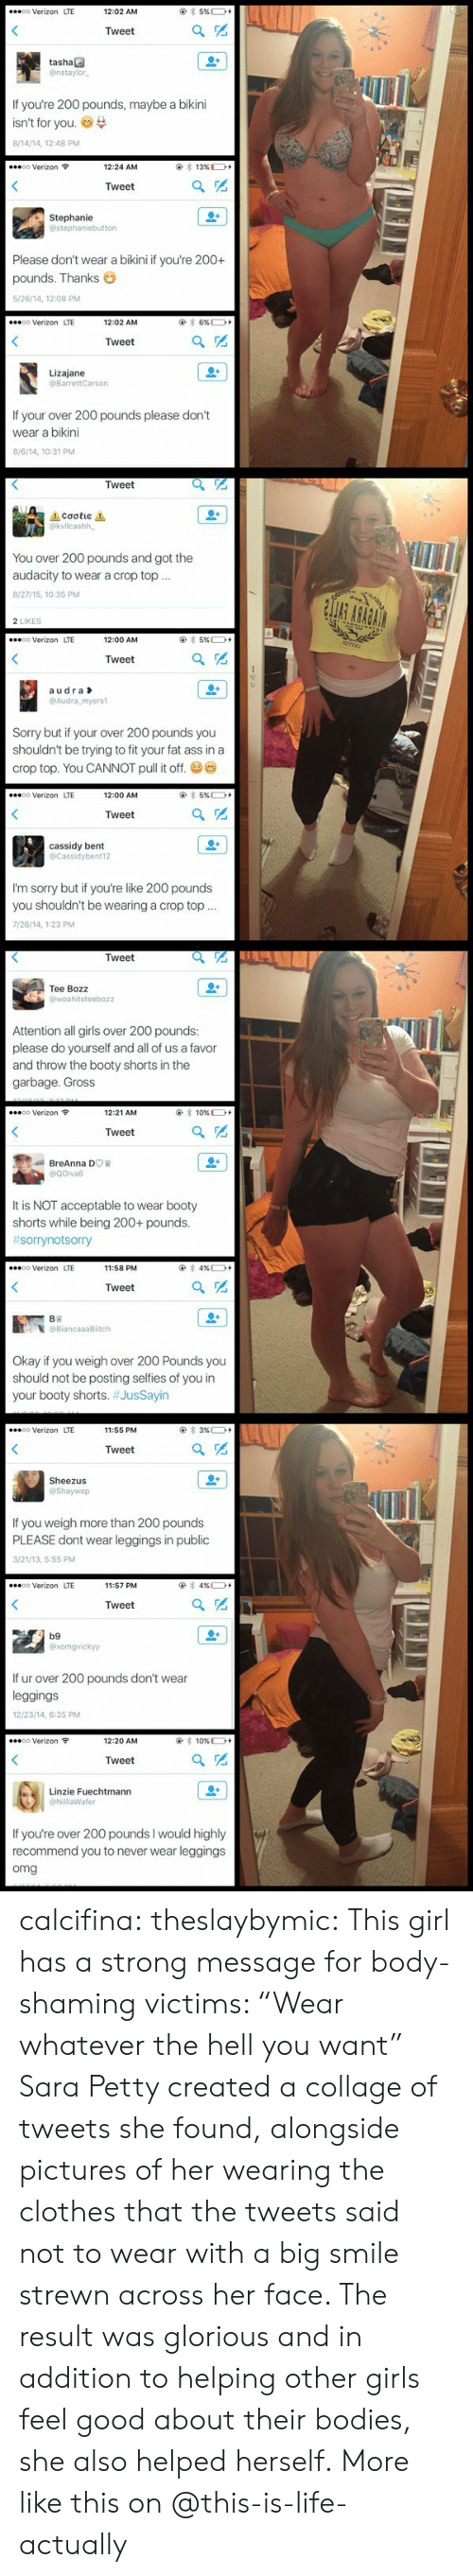 """Ass, Bodies , and Booty: @ 5 %D+  co Verizon LTE  12:02 AM  Tweet  tashae  @nstaylor  If you're 200 pounds, maybe a bikini  isn't for you  8/14/14, 12:48 PM  oo Verizon  13 %  12:24 AM  Tweet  Stephanie  @stephaniebutton  Please don't wear a bikini if you're 200+  pounds. Thanks  5/26/14, 12:08 PM  @ 6 %D  co Verizon LTE  12:02 AM  Tweet  Lizajane  @BarrettCarson  If your over 200 pounds please don't  wear a bikini  8/6/14, 10:31 PM   Tweet  1Cσσειε 1  @kvllcashh  You over 200 pounds and got the  audacity to wear a crop top.  8/27/15, 10:35 PM  2 LIKES  5 % +  oo Verizon LTE  12:00 AM  Tweet  audra  @Audra myers1  Sorry but if your over 200 pounds you  shouldn't be trying to fit your fat ass in a  crop top. You CANNOT pull it off.  5% +  co Verizon LTE  12:00 AM  Tweet  cassidy bent  @Cassidybent12  I'm sorry but if you're like 200 pounds  you shouldn't be wearing a crop top..  7/26/14, 1:23 PM   Tweet  Tee Bozz  @woahitsteebozz  Attention all girls over 200 pounds:  please do yourself and all of us a favor  and throw the booty shorts in the  garbage. Gross  10 % D+  oo Verizon  12:21 AM  Tweet  BreAnna DO  @QDiva6  It is NOT acceptable to wear booty  shorts while being 200+ pounds.  #sorrynotsorr  4 % D+  co Verizon LTE  11:58 PM  Tweet  BB  @BiancaaaBitch  Okay if you weigh over 200 Pounds you  should not be posting selfies of you in  your booty shorts. #JusSayin   @ 3 %D  oo Verizon LTE  11:55 PM  Tweet  Sheezus  @Shaywop  If you weigh more than 200 pounds  PLEASE dont wear leggings in public  3/21/13, 5:55 PM  4 % +  oo Verizon LTE  11:57 PM  Tweet  b9  @xomgvickyy  If ur over 200 pounds don't wear  leggings  12/23/14, 6:35 PM  co Verizon  10 %D  12:20 AM  Tweet  Linzie Fuechtmann  @NillaWafer  If you're over 200 pounds I would highly  recommend you to never wear leggings  omg calcifina: theslaybymic:   This girl has a strong message for body-shaming victims: """"Wear whatever the hell you want"""" Sara Petty created a collage of tweets she found, alongside pictures o"""